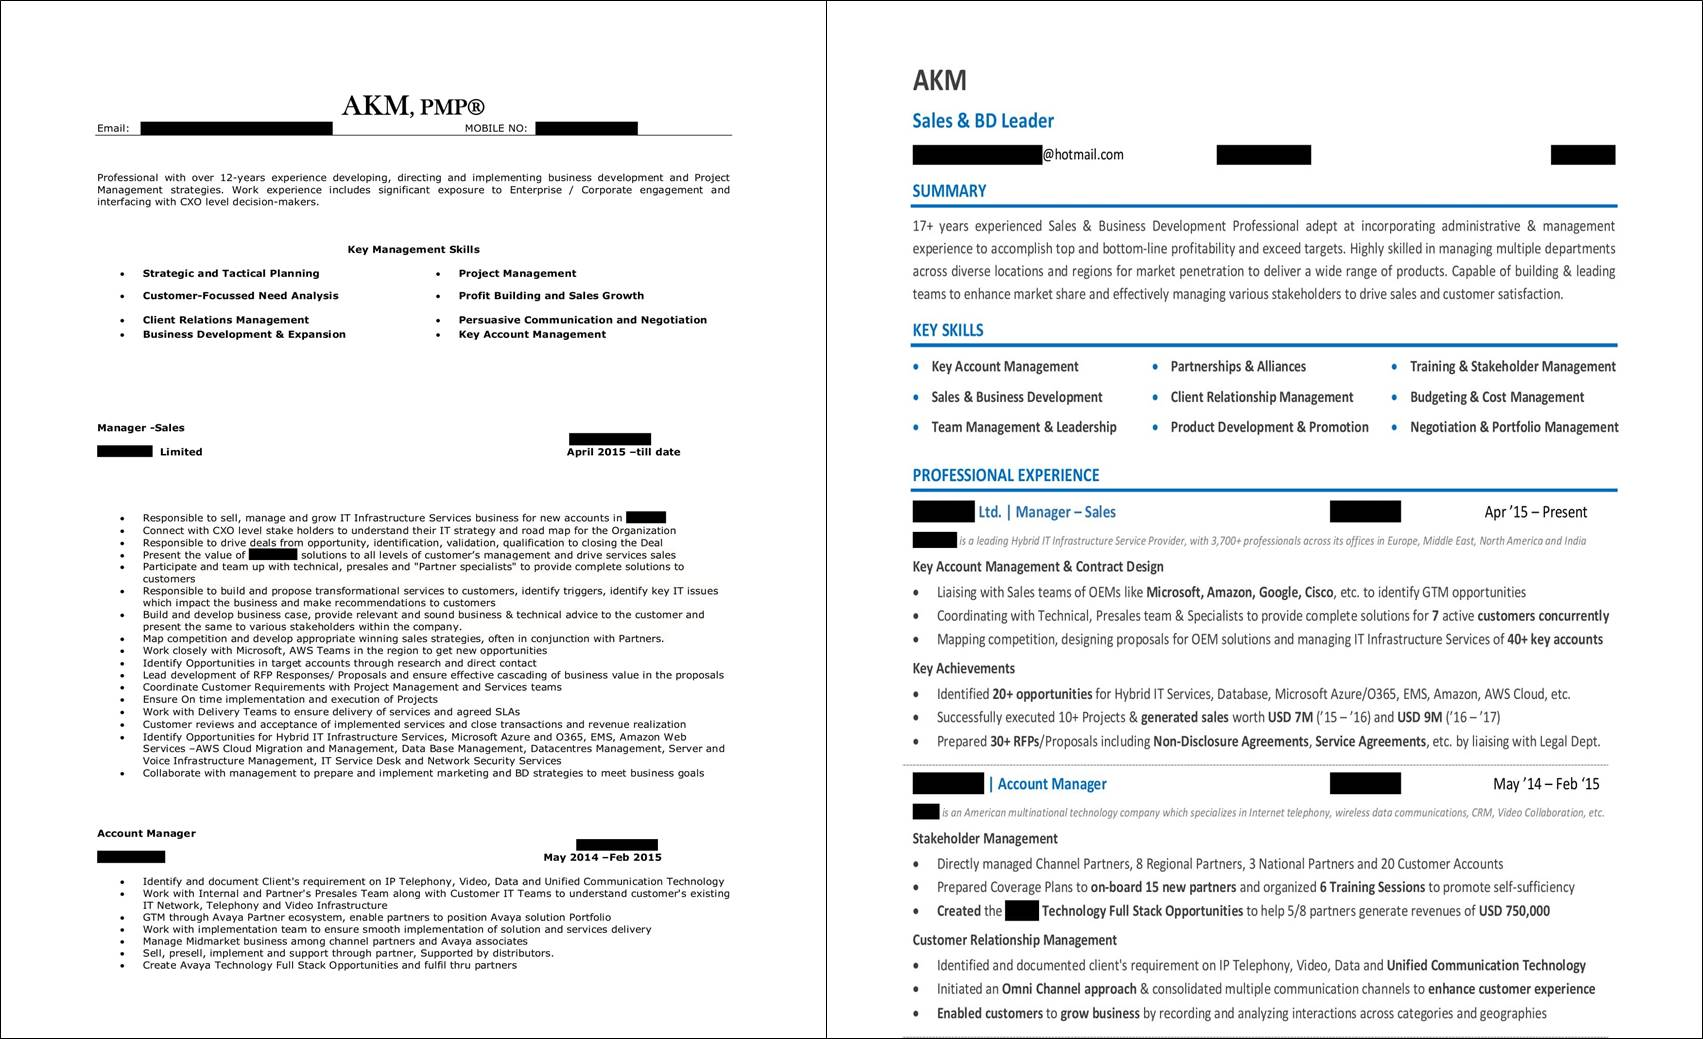 Best Resume Format For Sales Professionals Sales Resume Examples And Samples